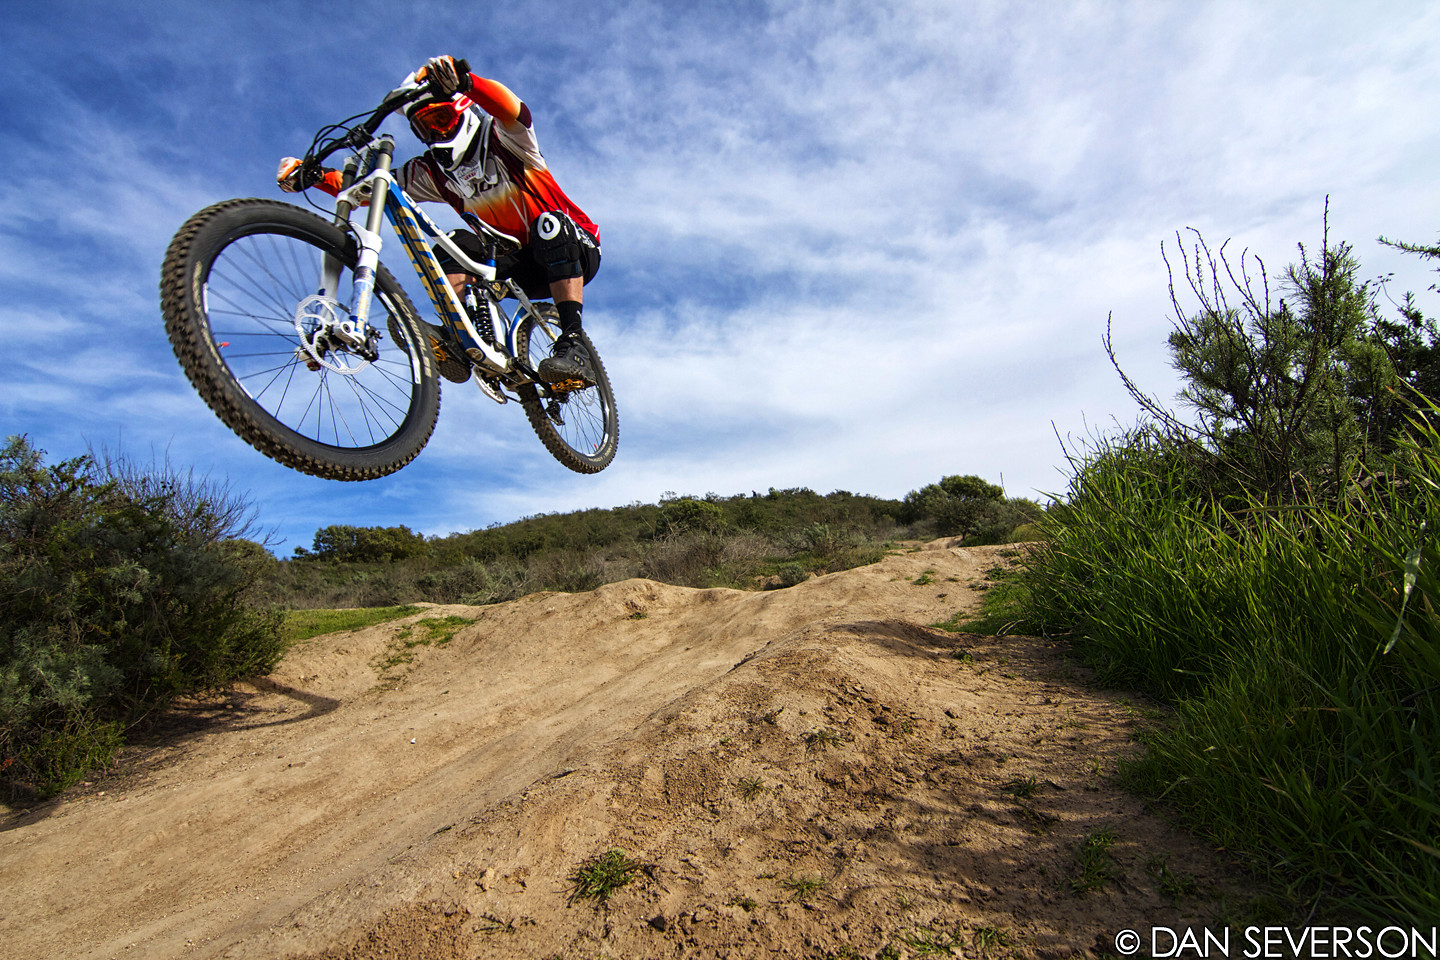 Nate Vieau in Laguna - danseverson photo - Mountain Biking Pictures - Vital MTB